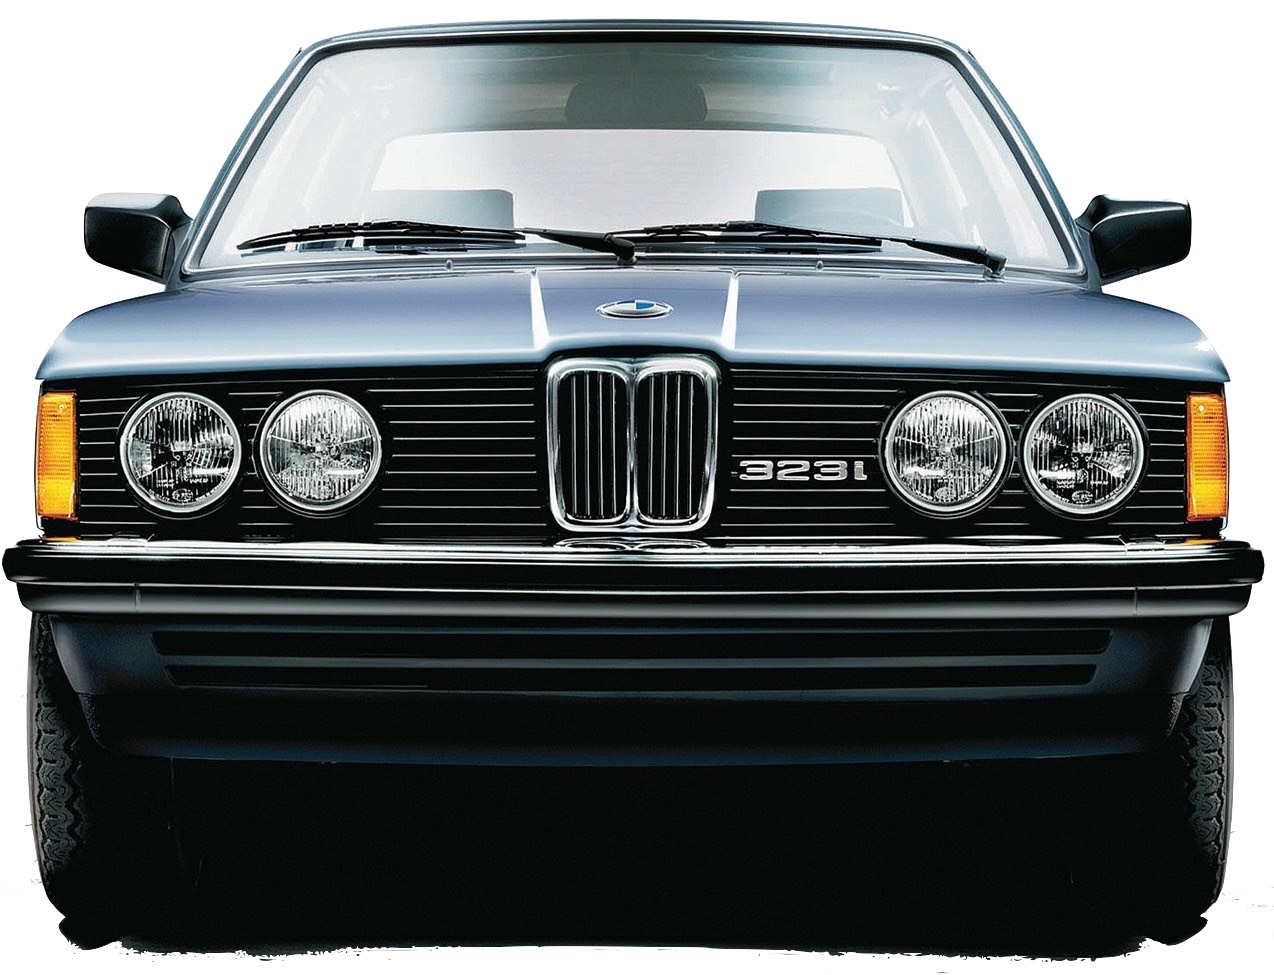 BMW 323i/323is/323Ci 1996-2011 Workshop Repair & Service Manual